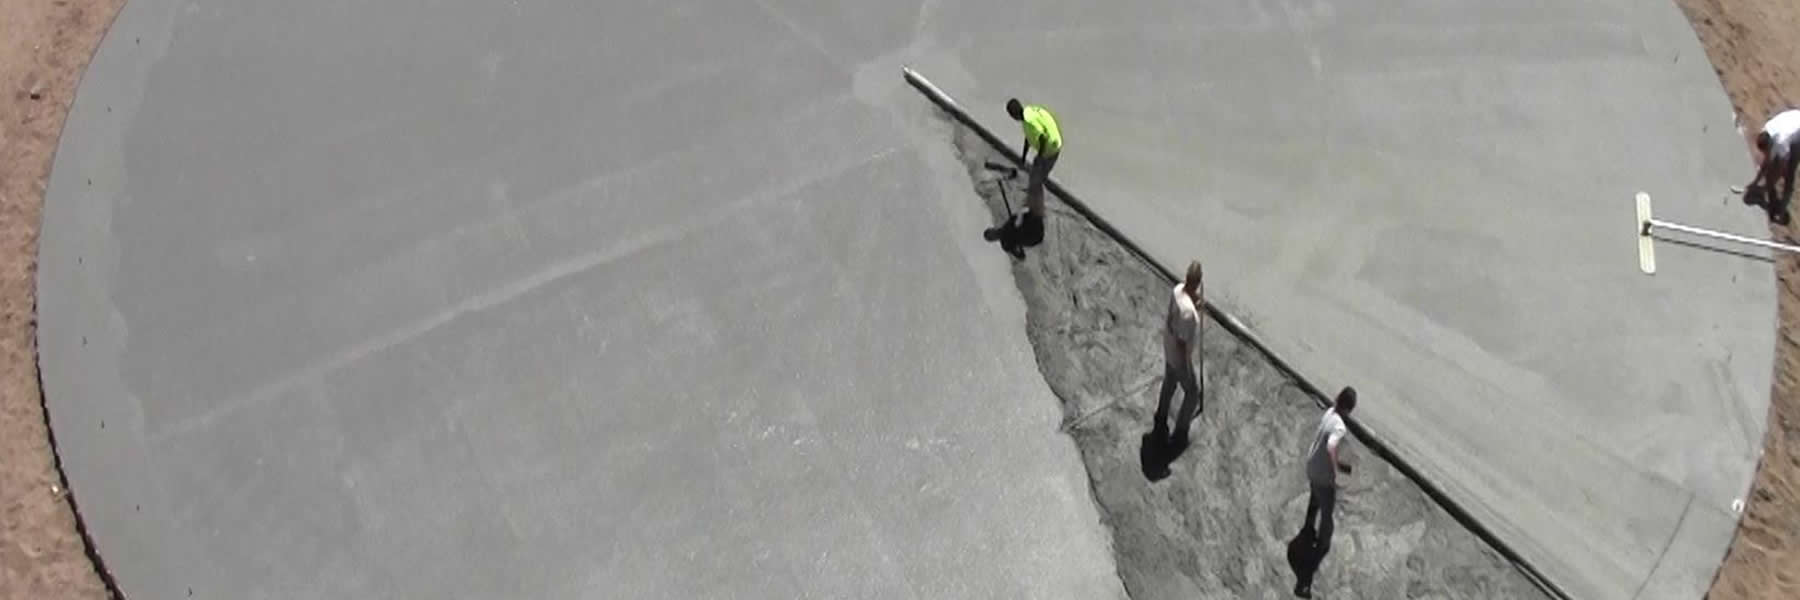 Use the Lura Screed system to pour concrete in large circles.